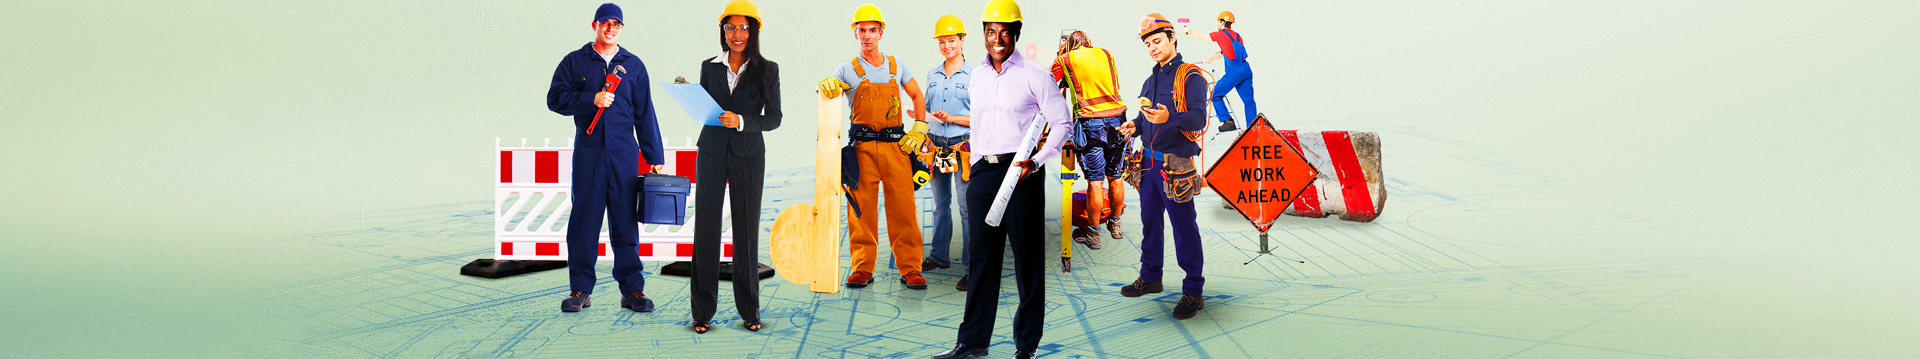 A photo illustration of various public works professionals, all of whom are represented by APWA